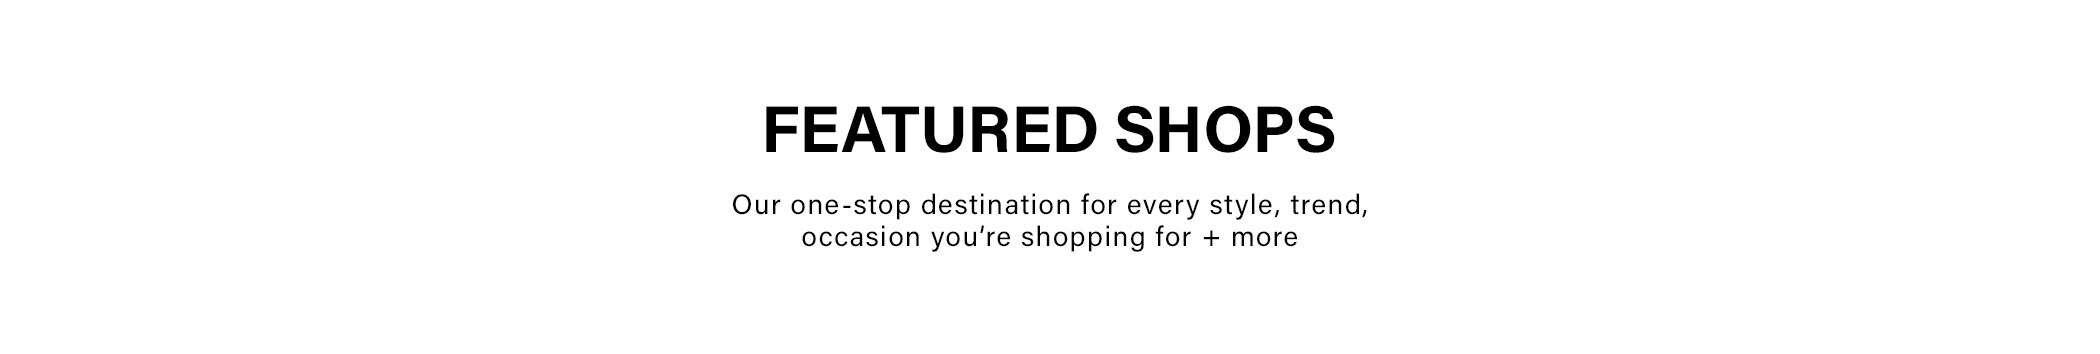 Featured Shops: Our one-stop destination for every style trend, occasion you're shopping plus more.